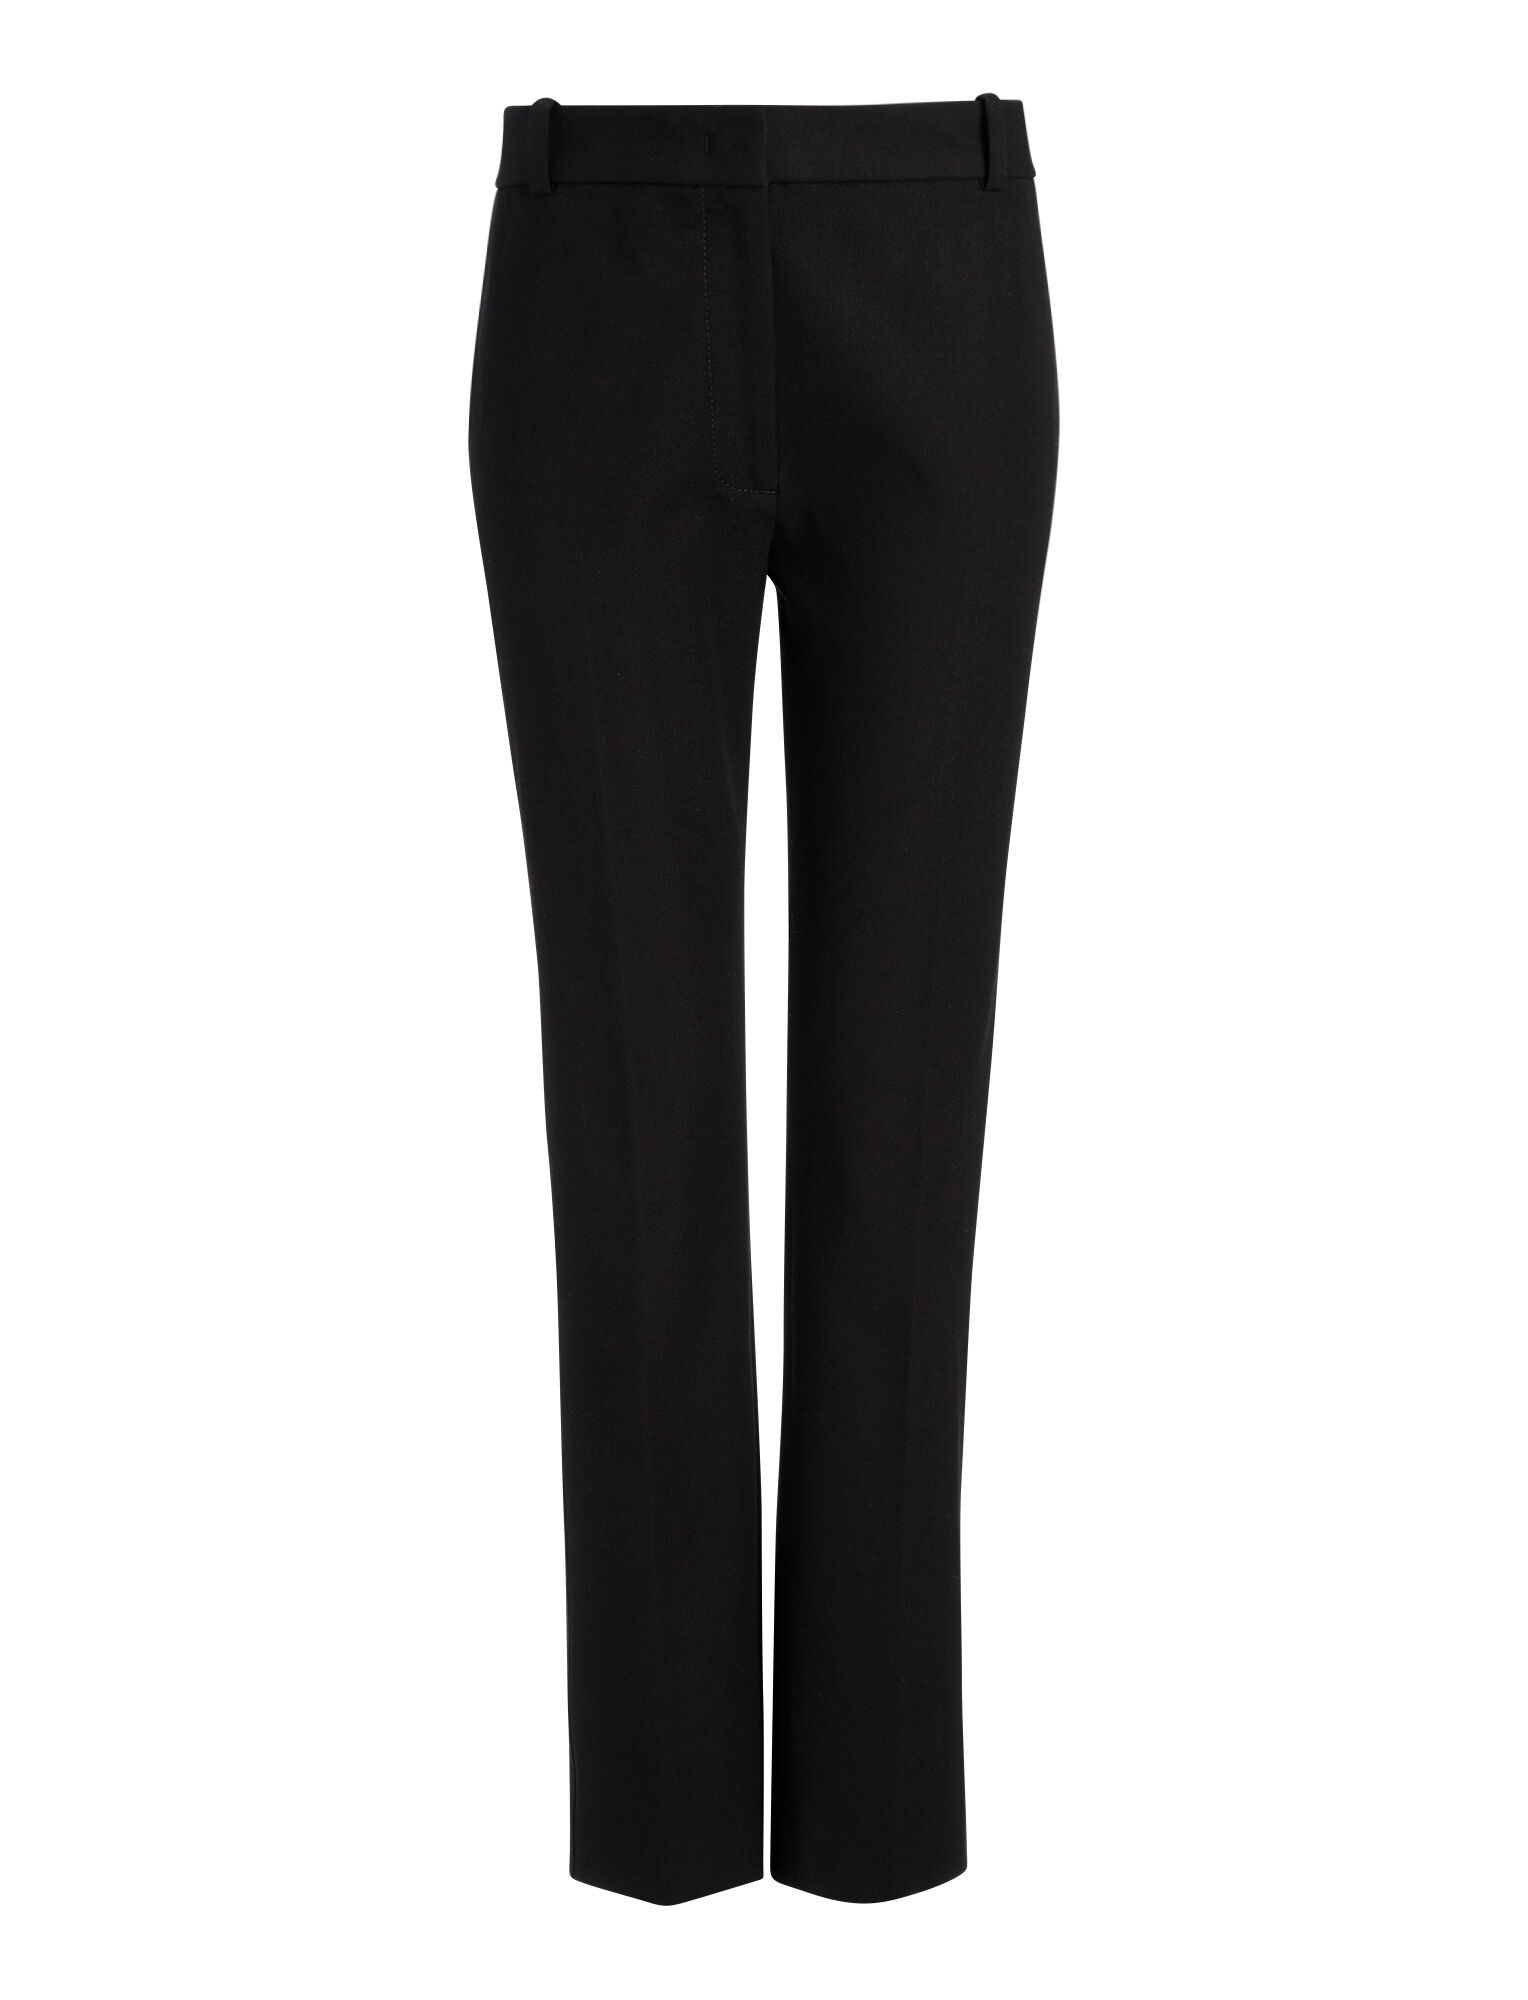 top-rated latest finest fabrics choose clearance Zoom Gabardine Stretch Trousers